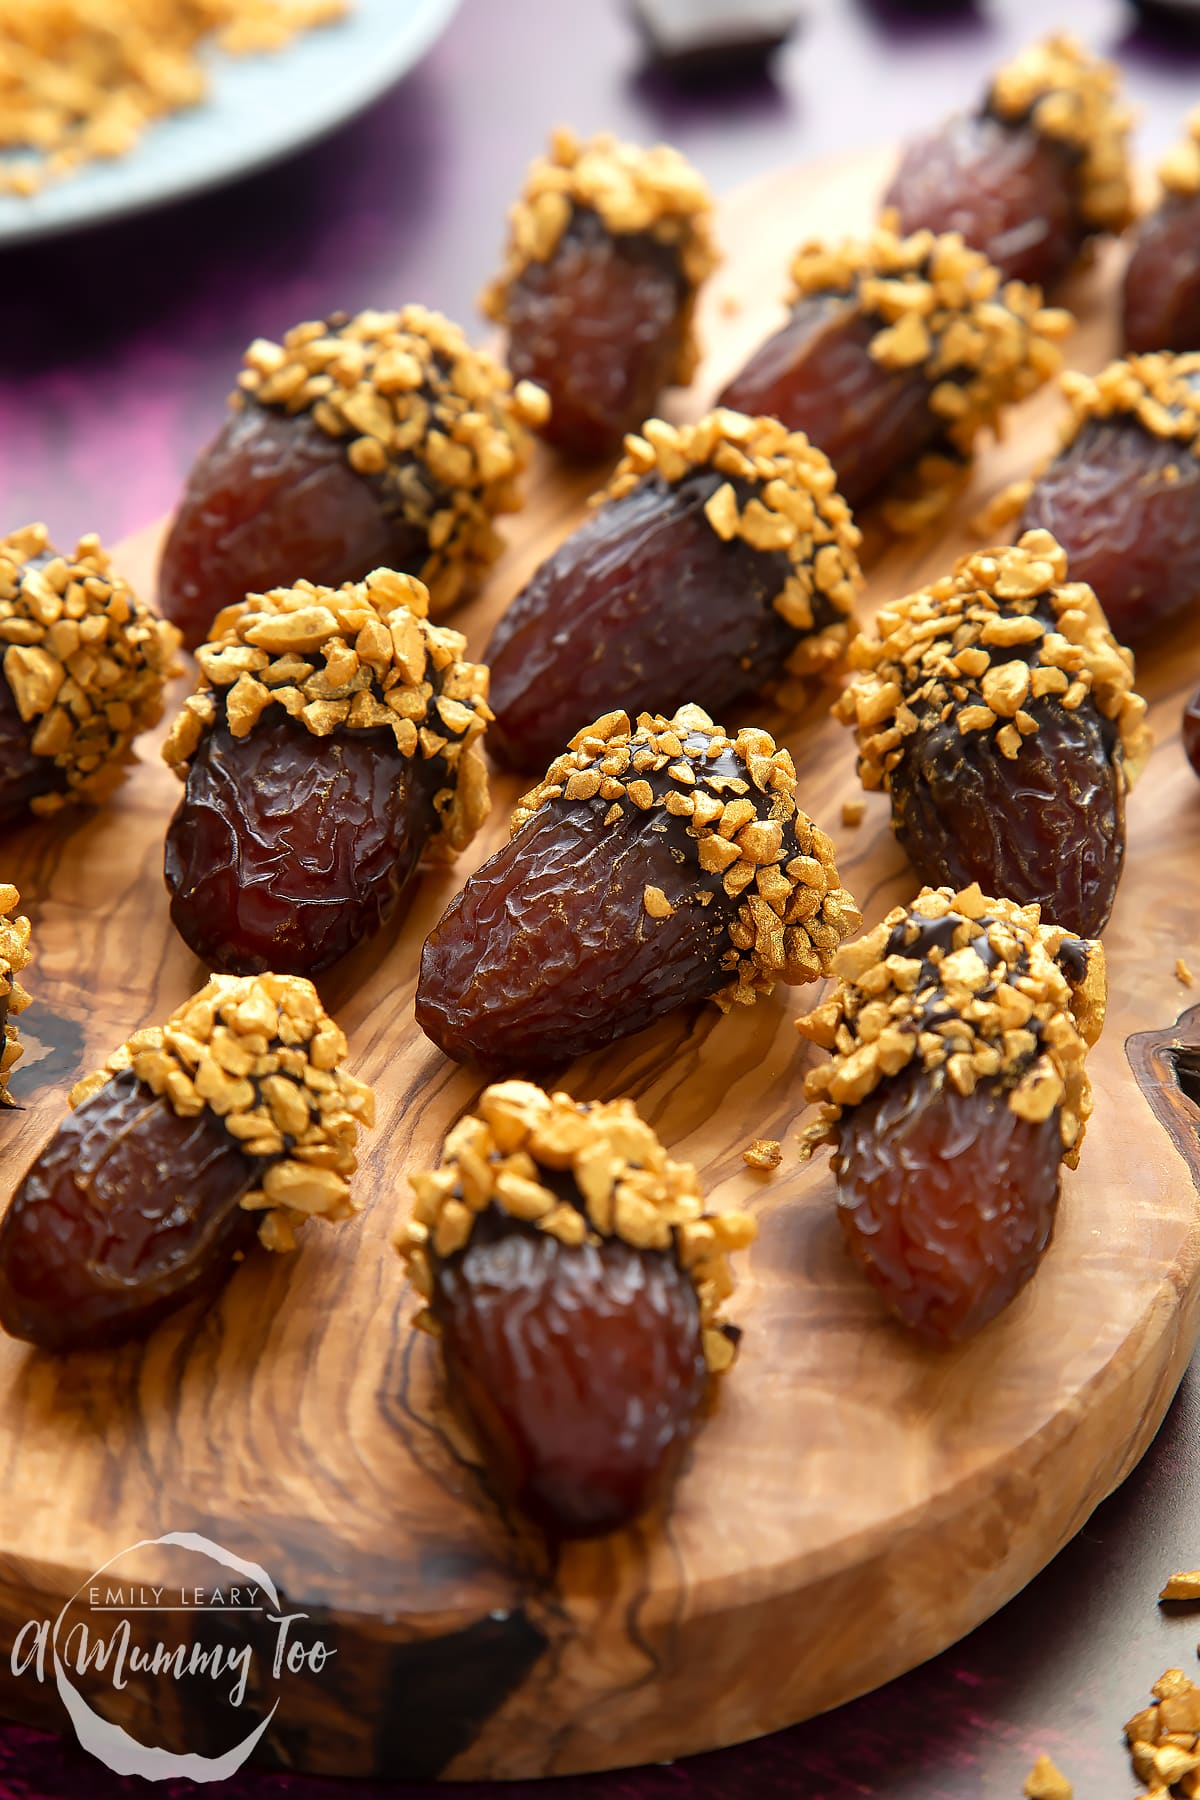 Medjool dates dipped in chocolate. The chocolate dates are on a wooden board and have be studded with gold chopped nuts.